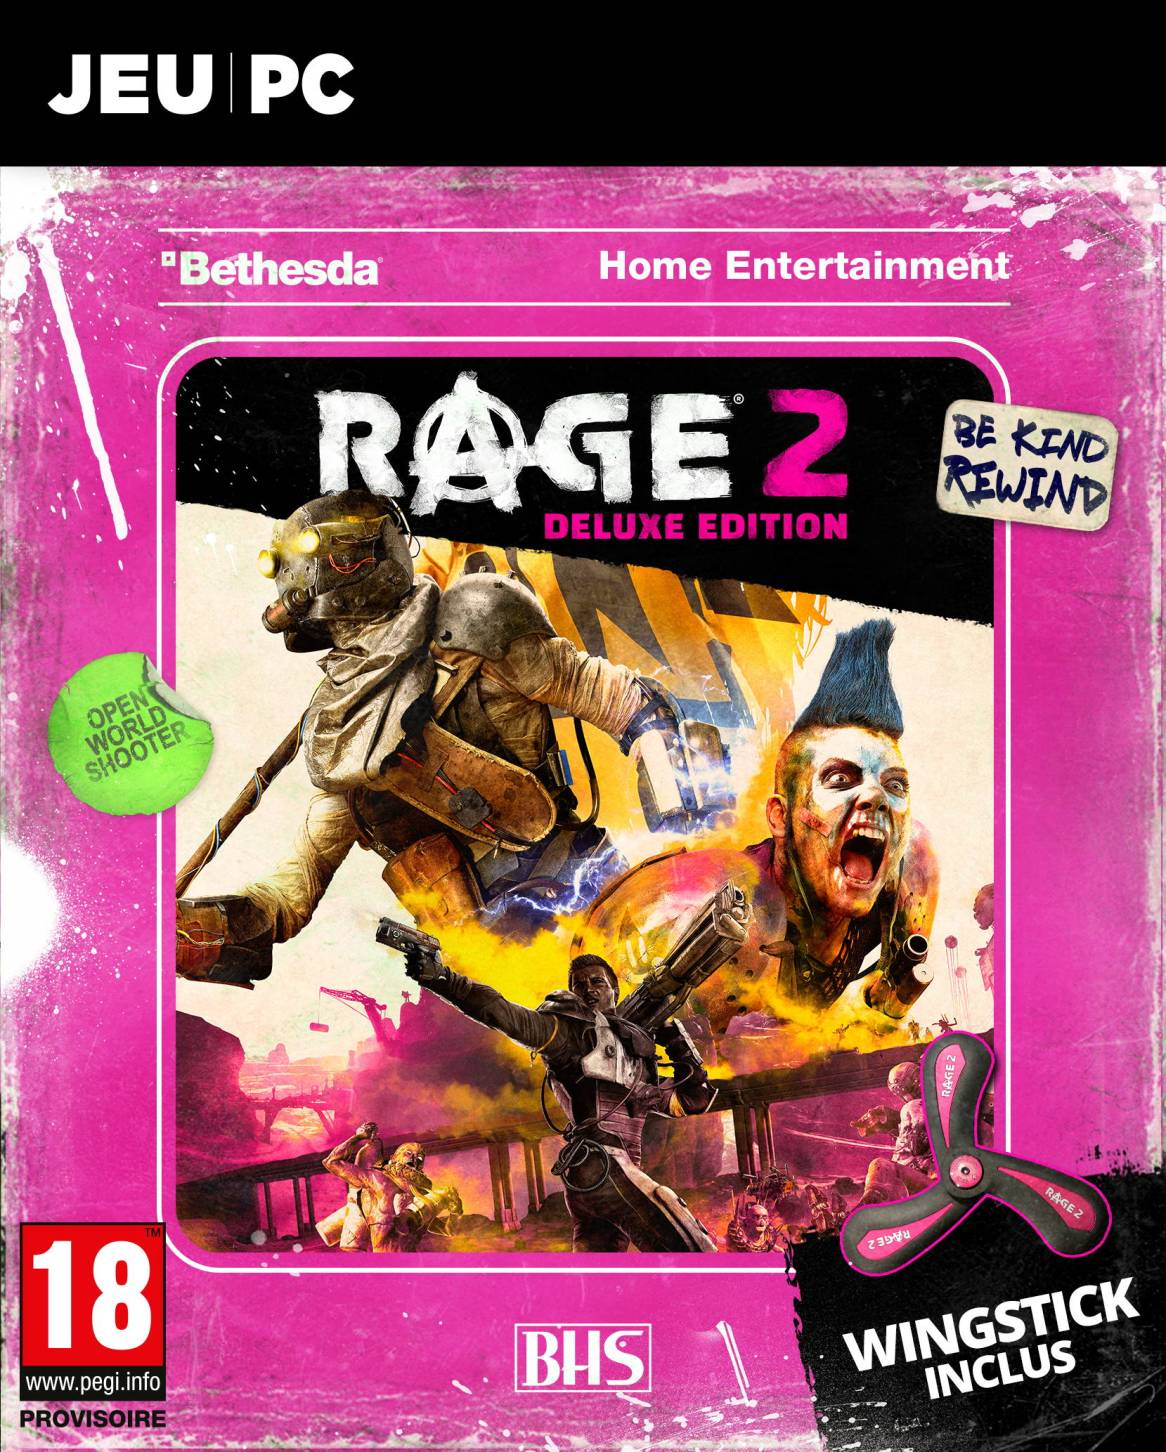 rage2_dec18images_0006